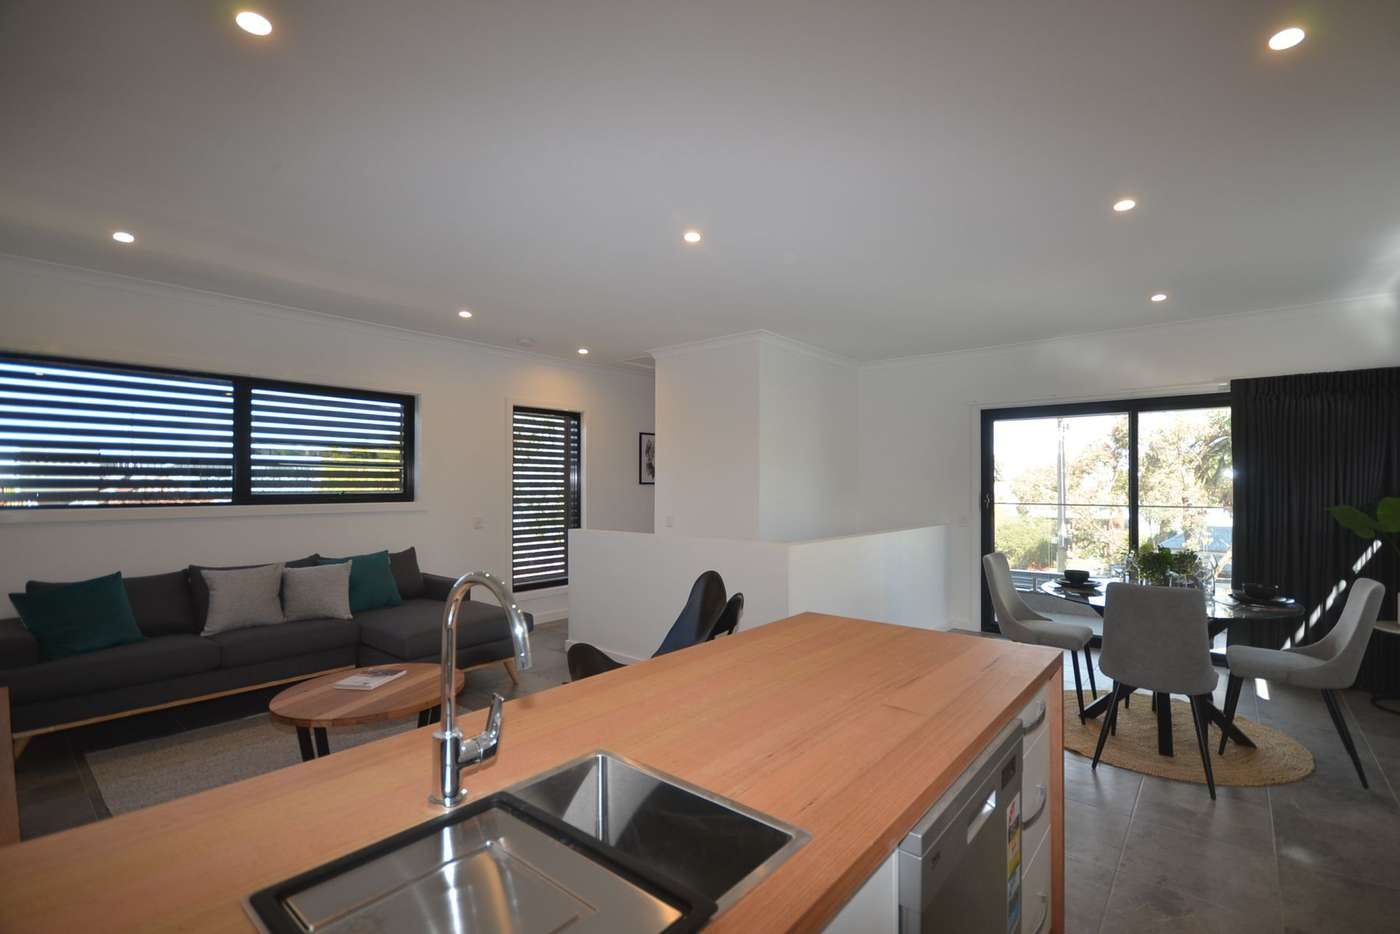 Seventh view of Homely house listing, 1/164 Arnold Street, Bendigo VIC 3550